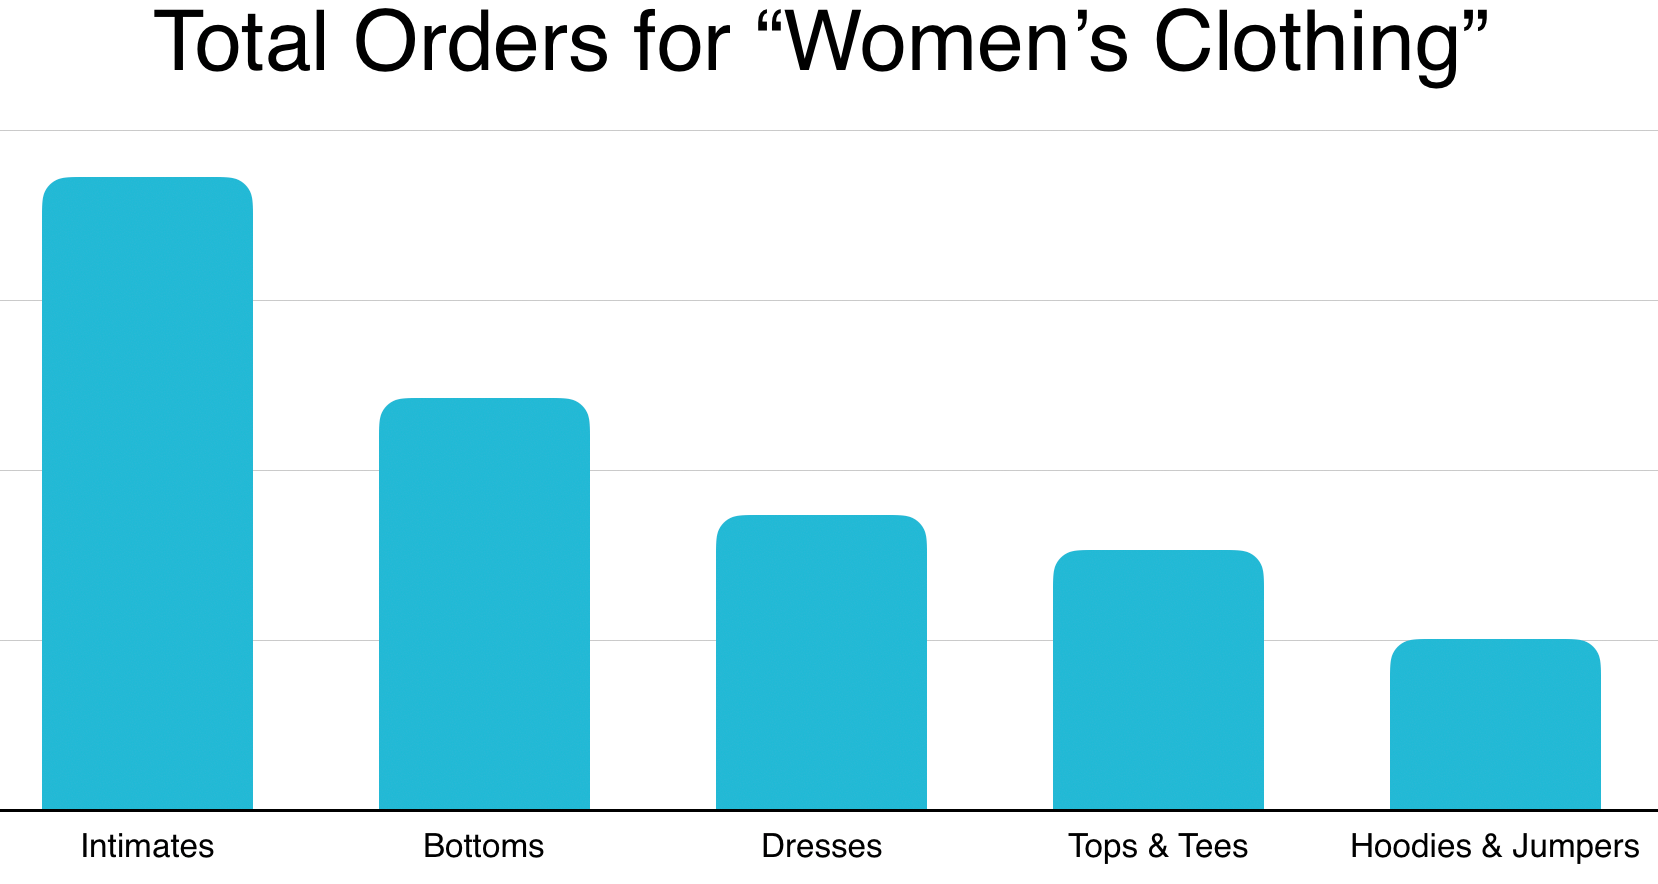 2019 Niche US Markets for Women's Clothing